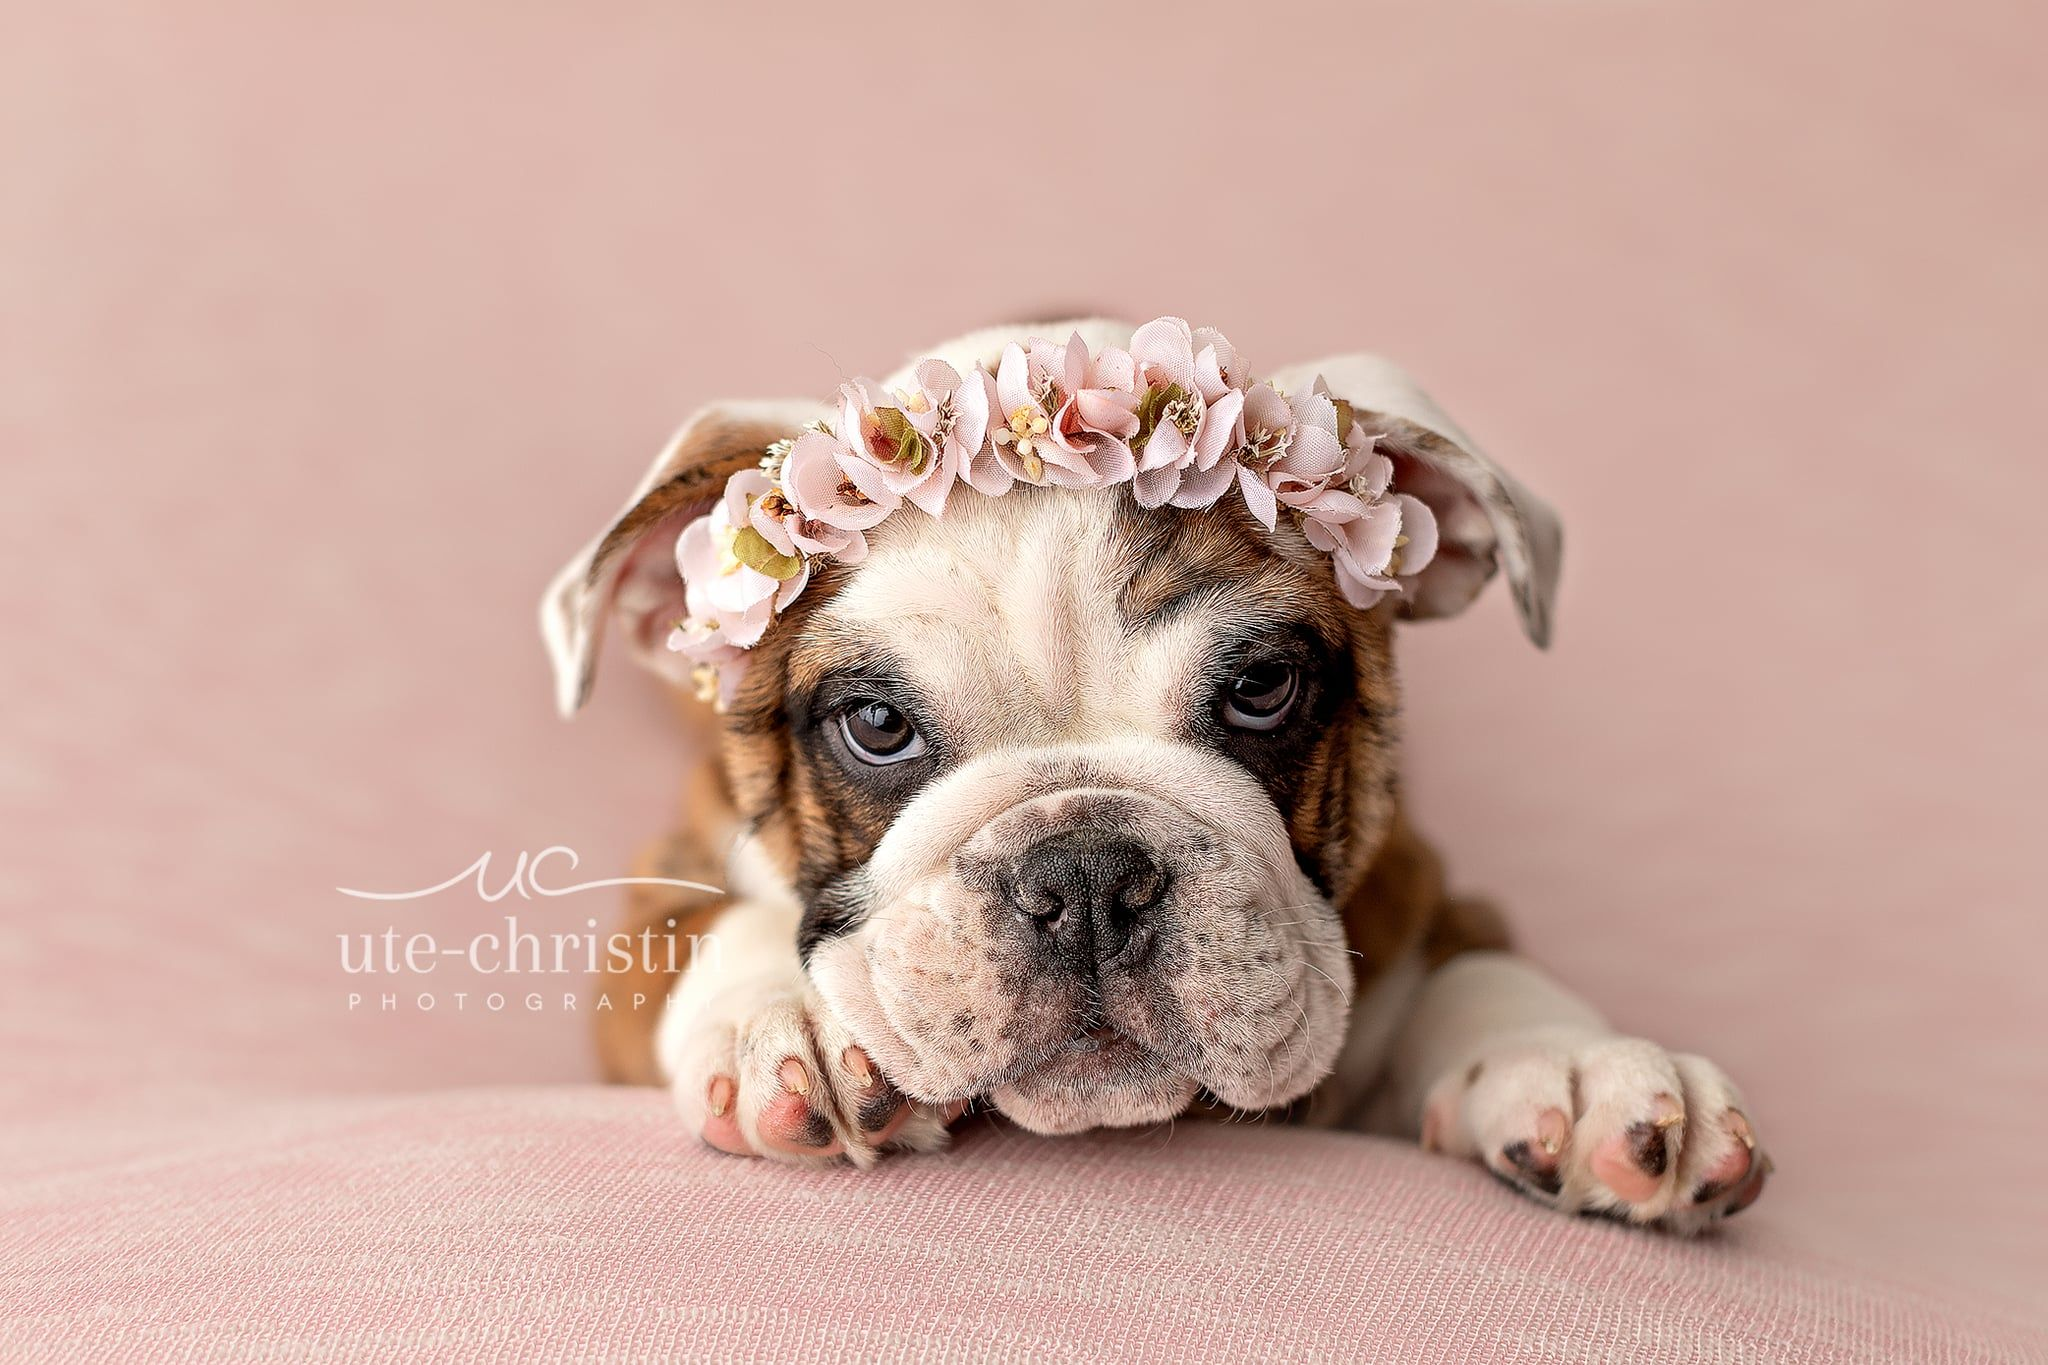 A Photographer Staged A Newborn Shoot For An English Bulldog Puppy And The Results Will Give You Heart Eyes In 2020 Bulldog Puppies English Bulldog Puppies English Bulldog Puppy